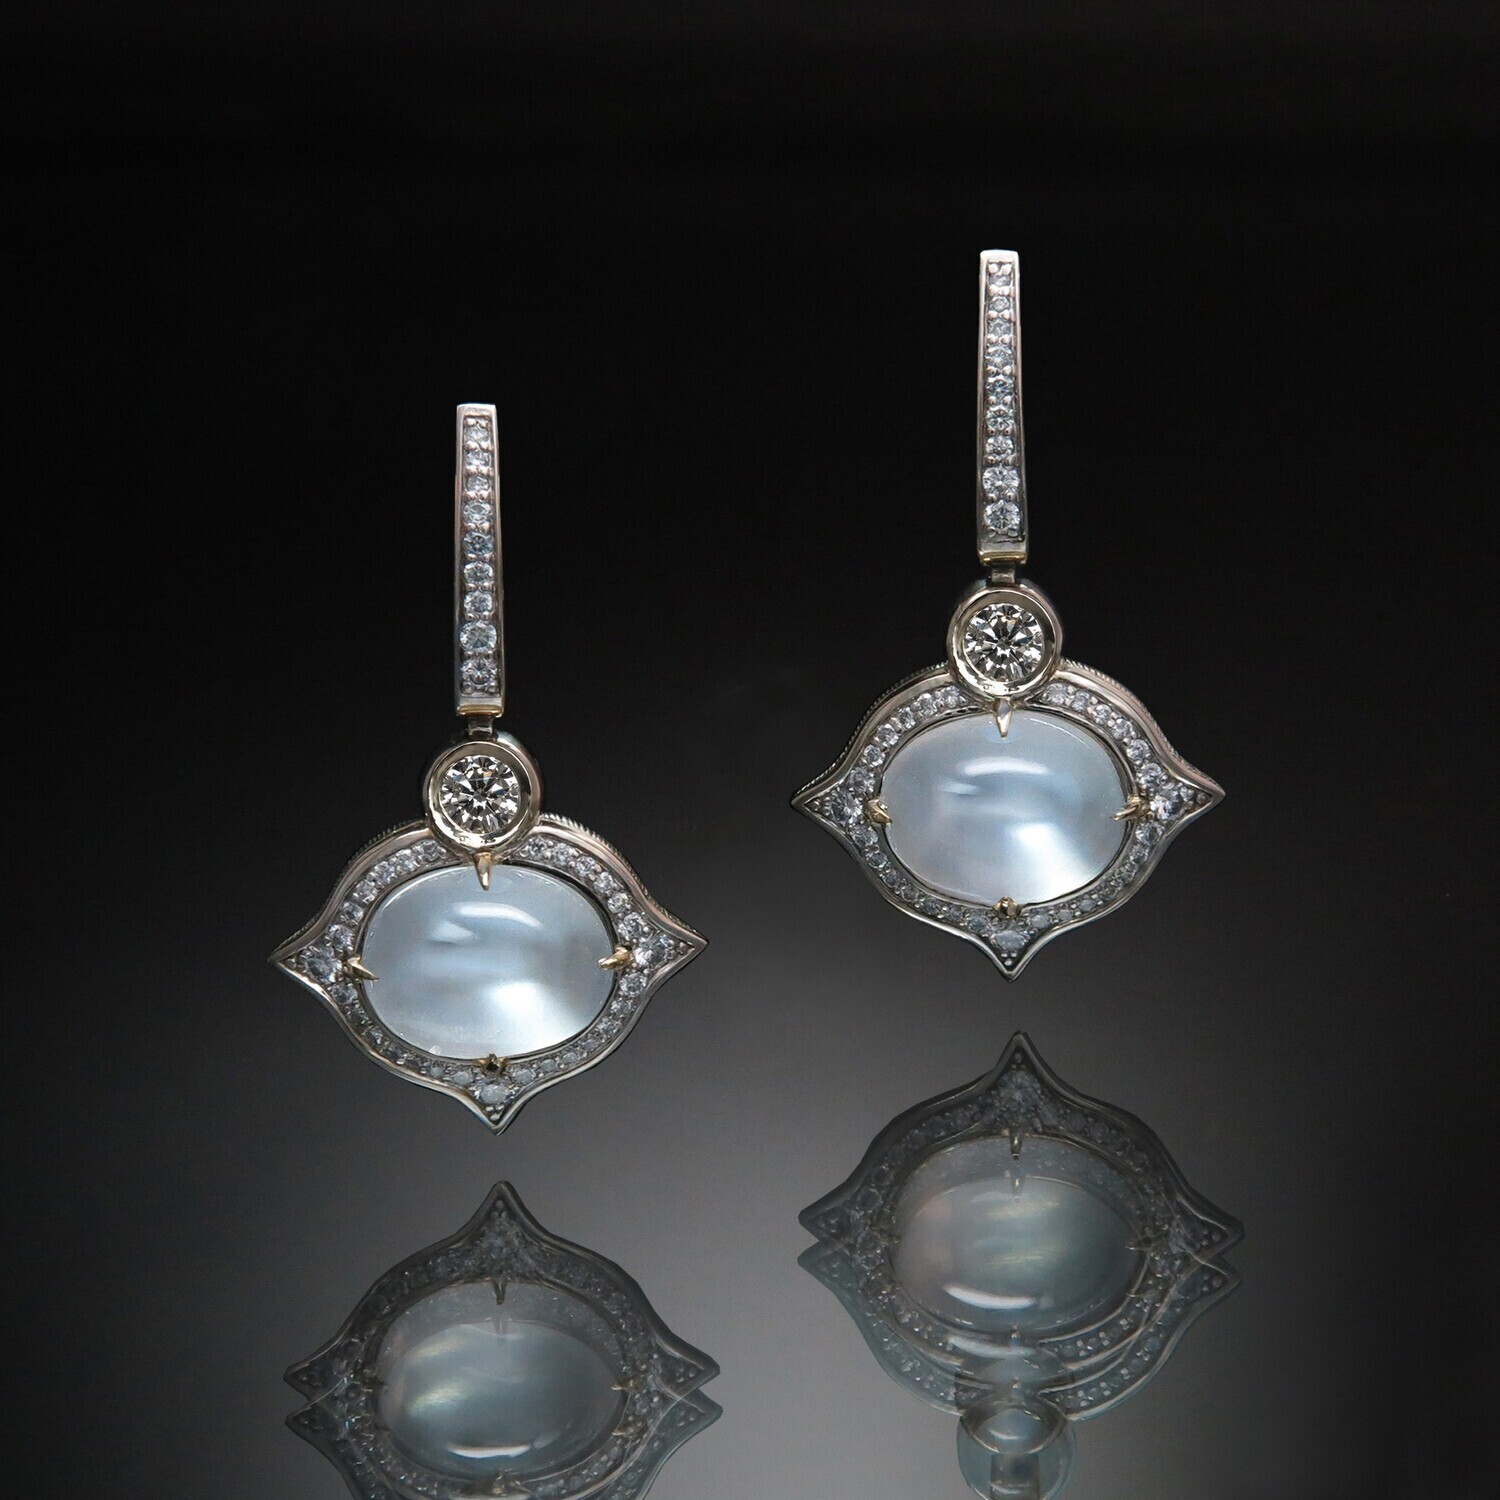 14K Gold Earrings with Adular (Moonstone) and Diamonds, PS003R